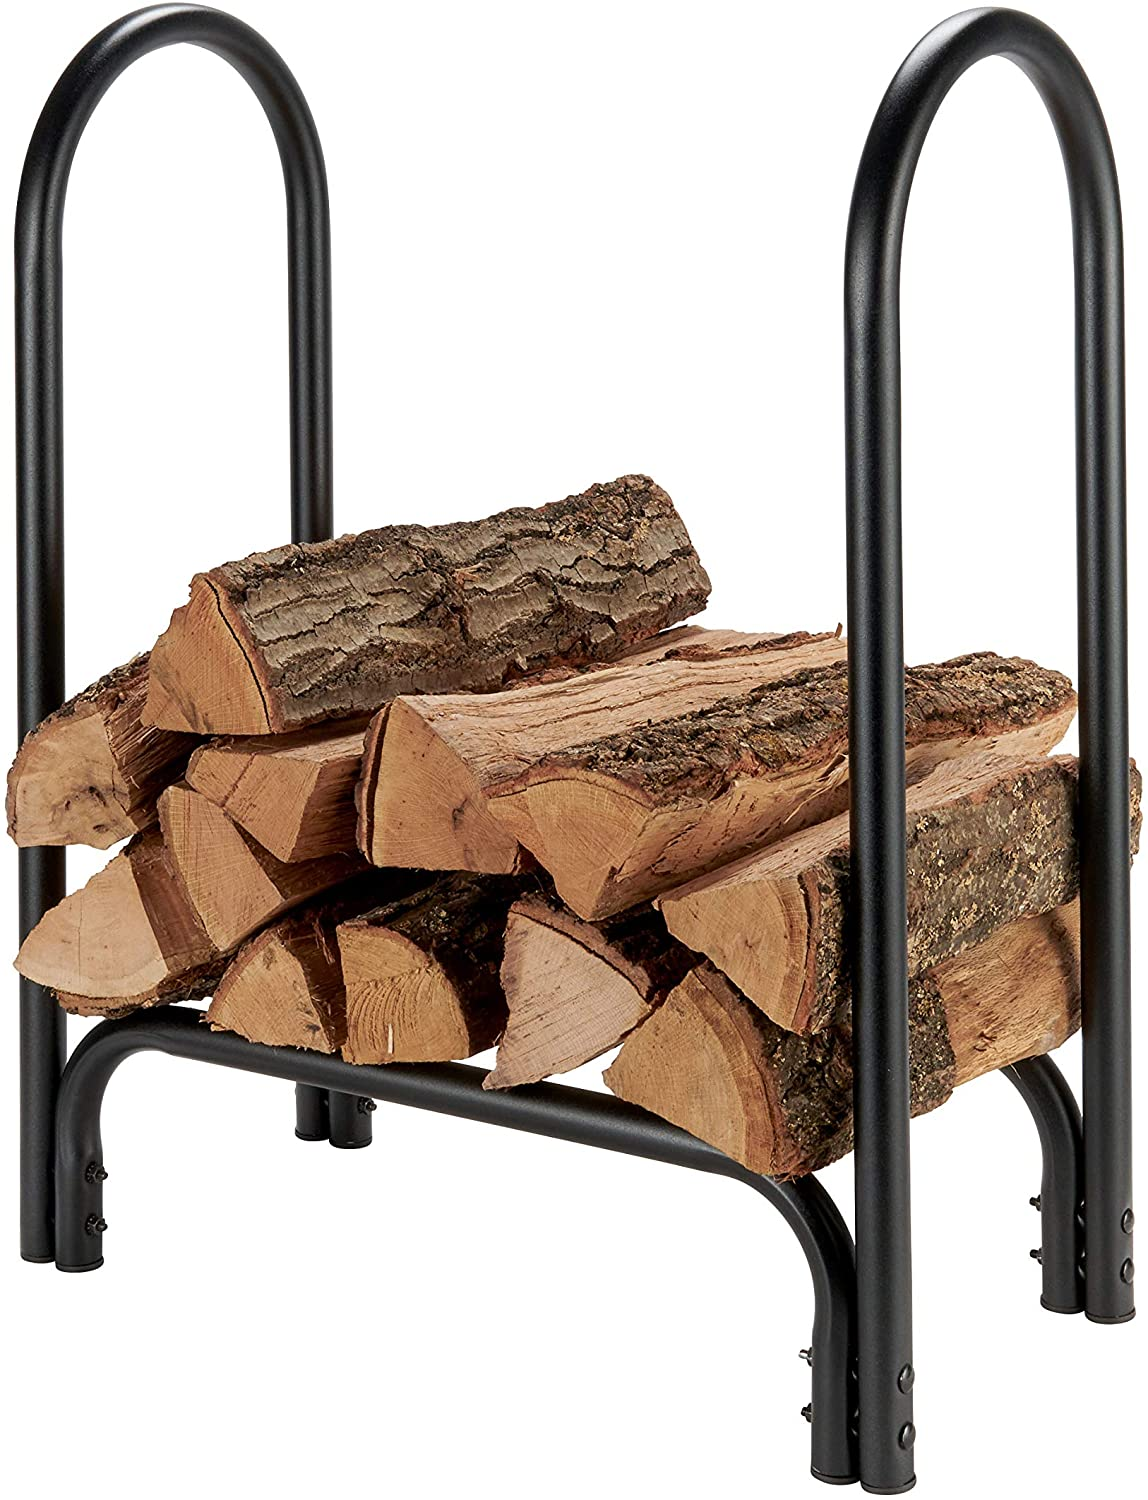 Shelter SLRS Firewood Storage Log